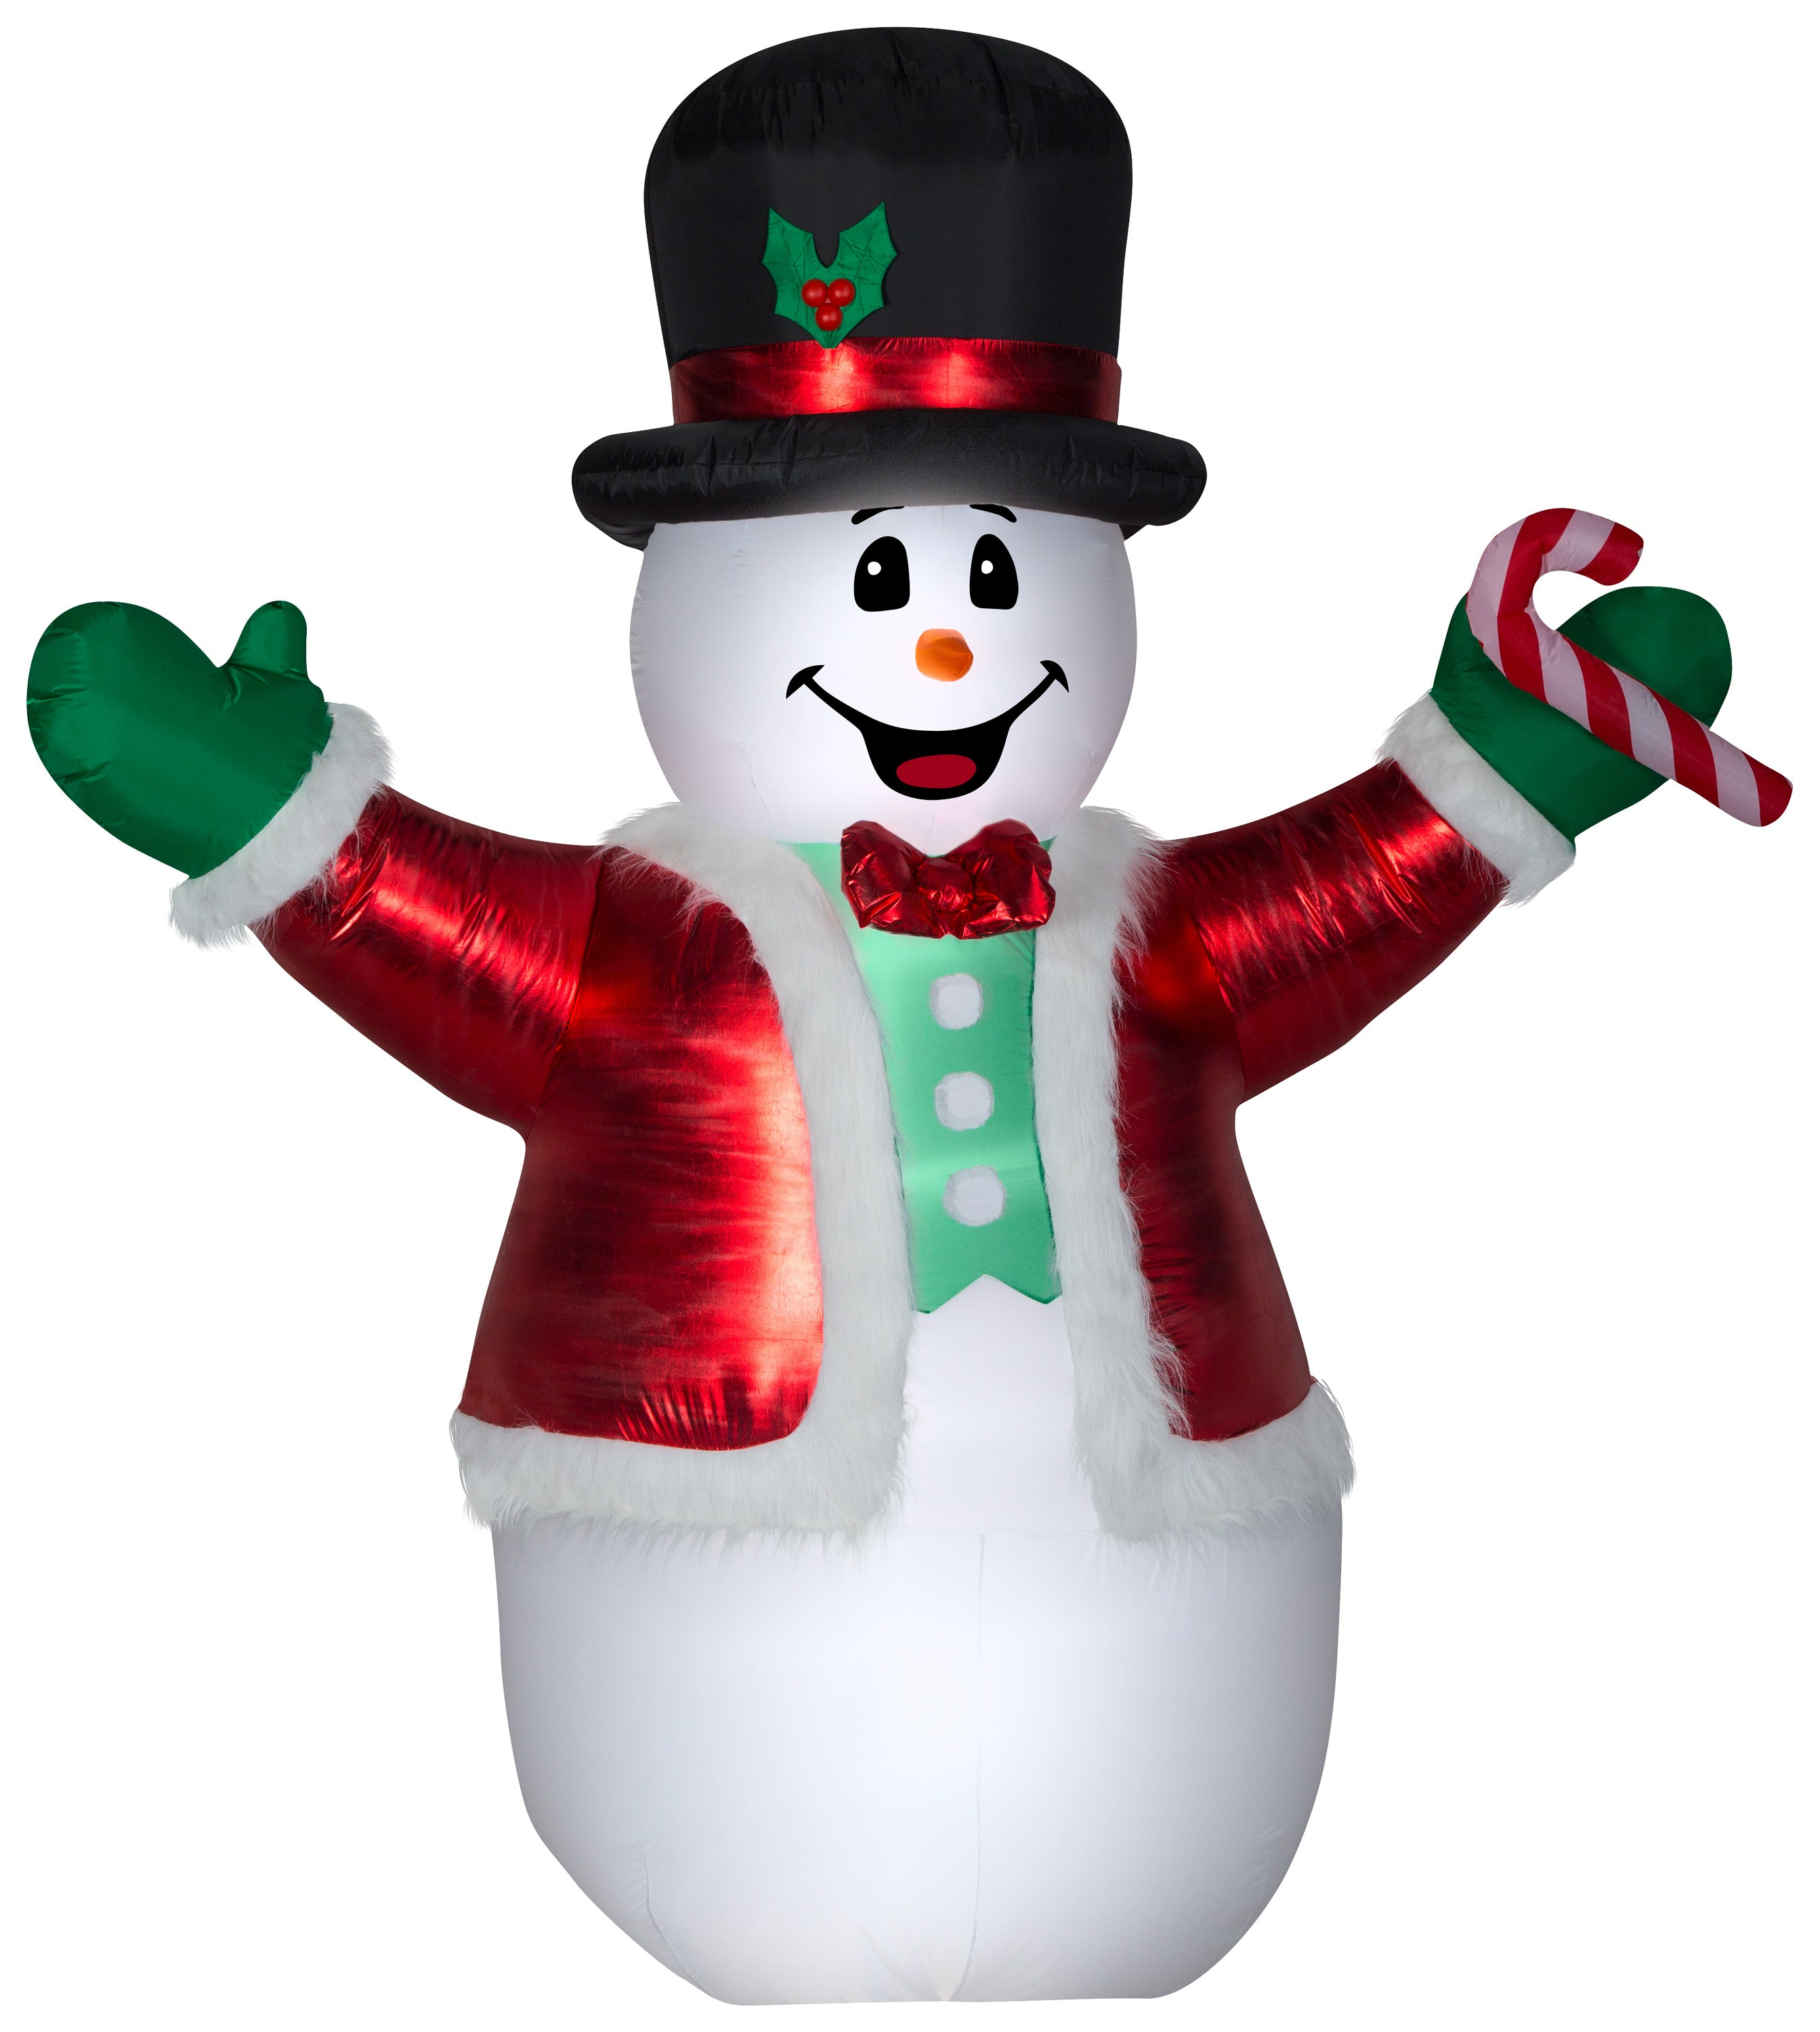 Gemmy Christmas Airblown Inflatable Mixed Media Luxe Snowman Giant, 8.5 ft Tall, Multicolored